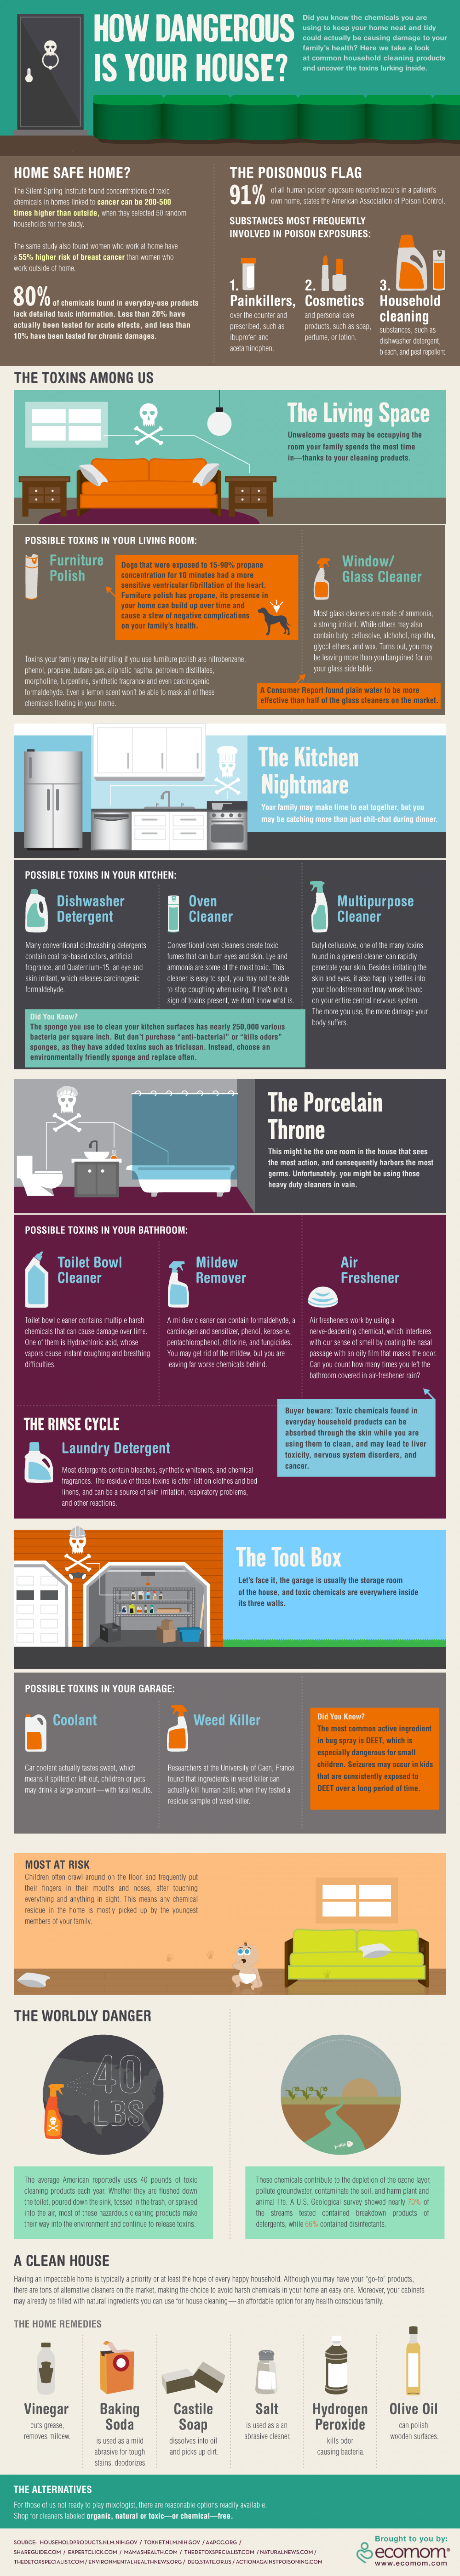 How Dangerous is Your House Infographic